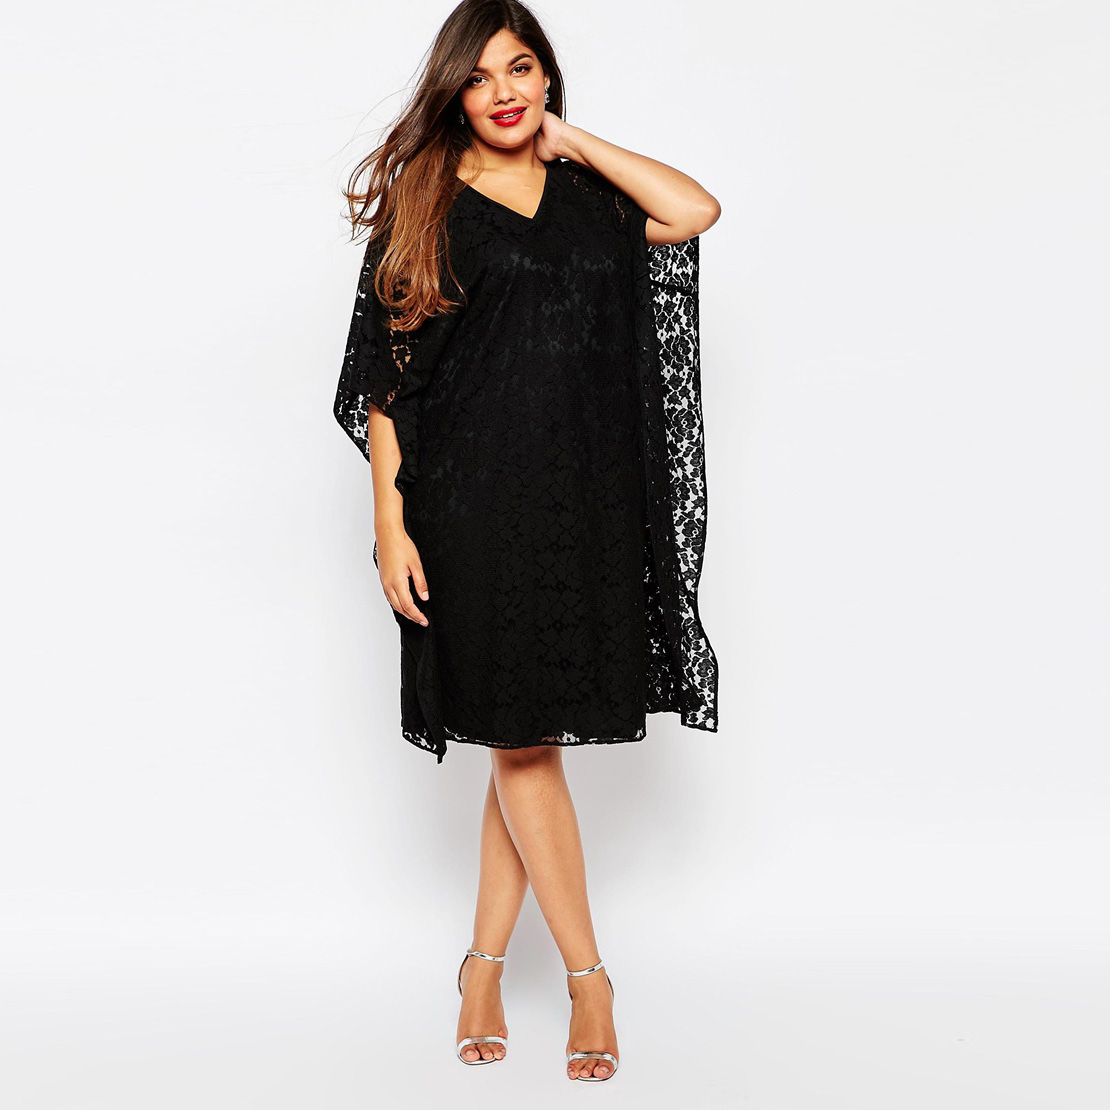 Black Lace Dress 2015 Autumn Summer Style Hot New Fashion Women Casual Vestidos V-neck Female Dresses Plus Size 5xl 4xl DressОдежда и ак�е��уары<br><br><br>Aliexpress